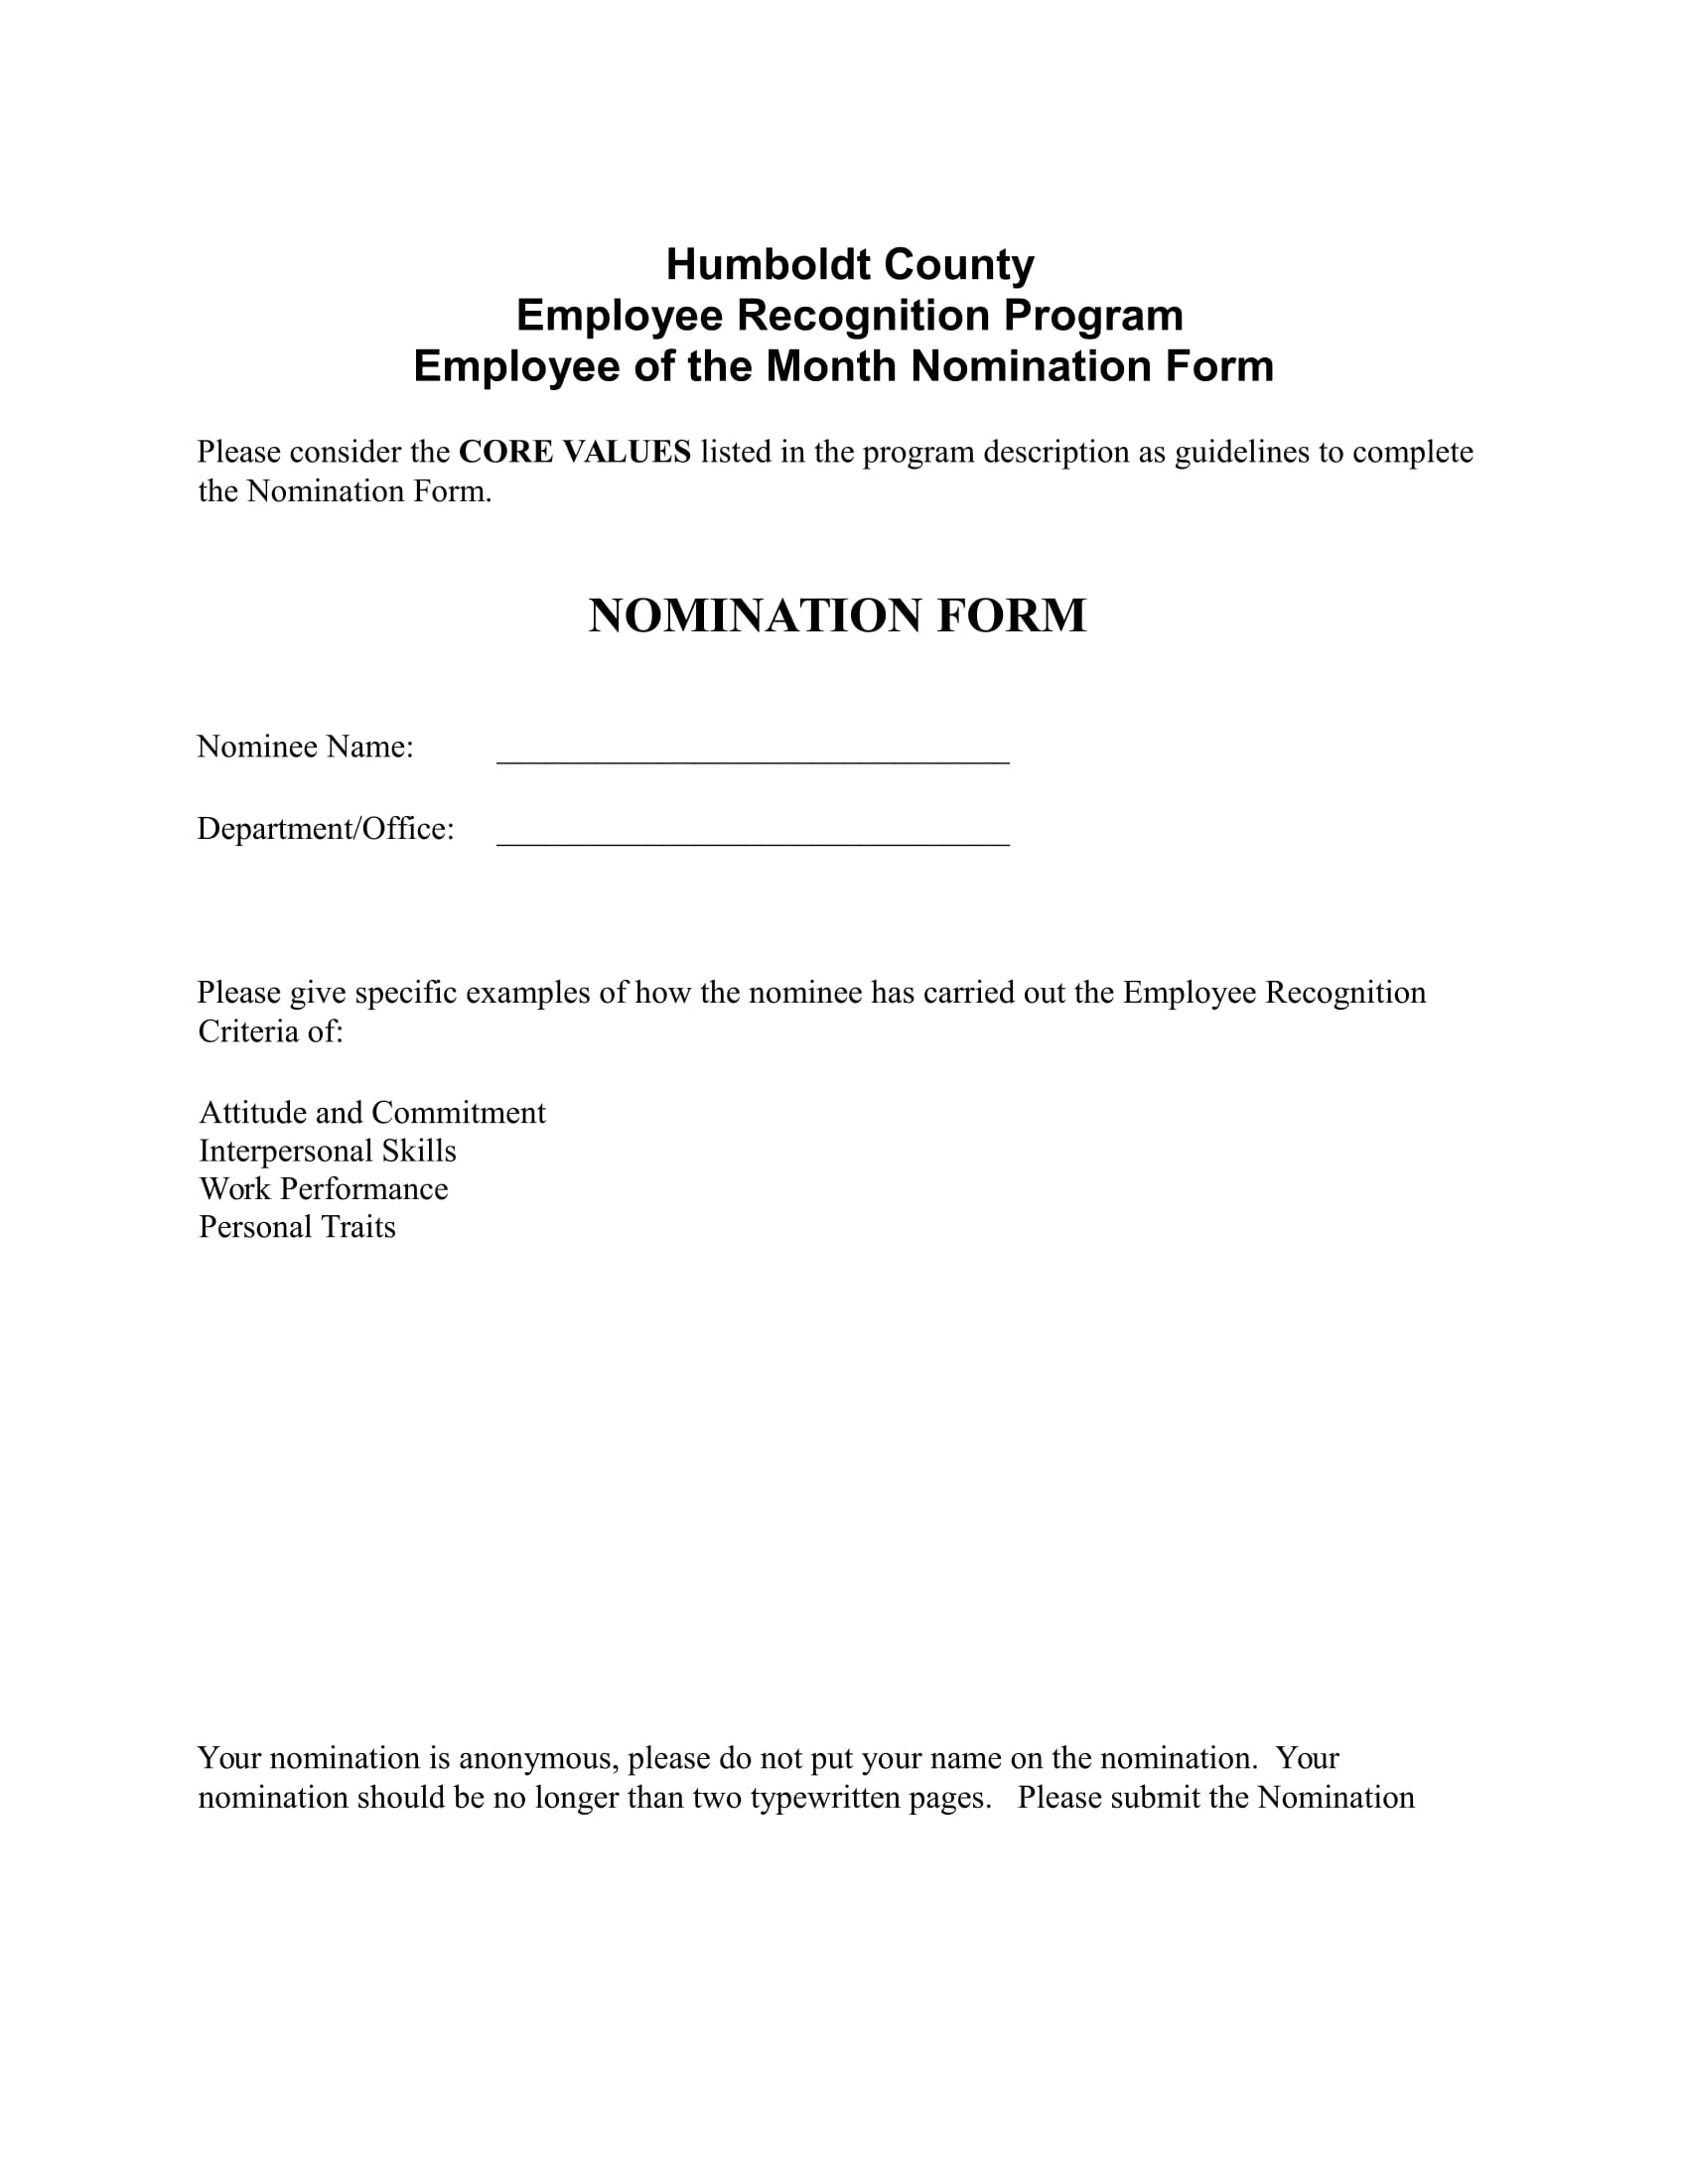 employee of the month nomination form in doc 1